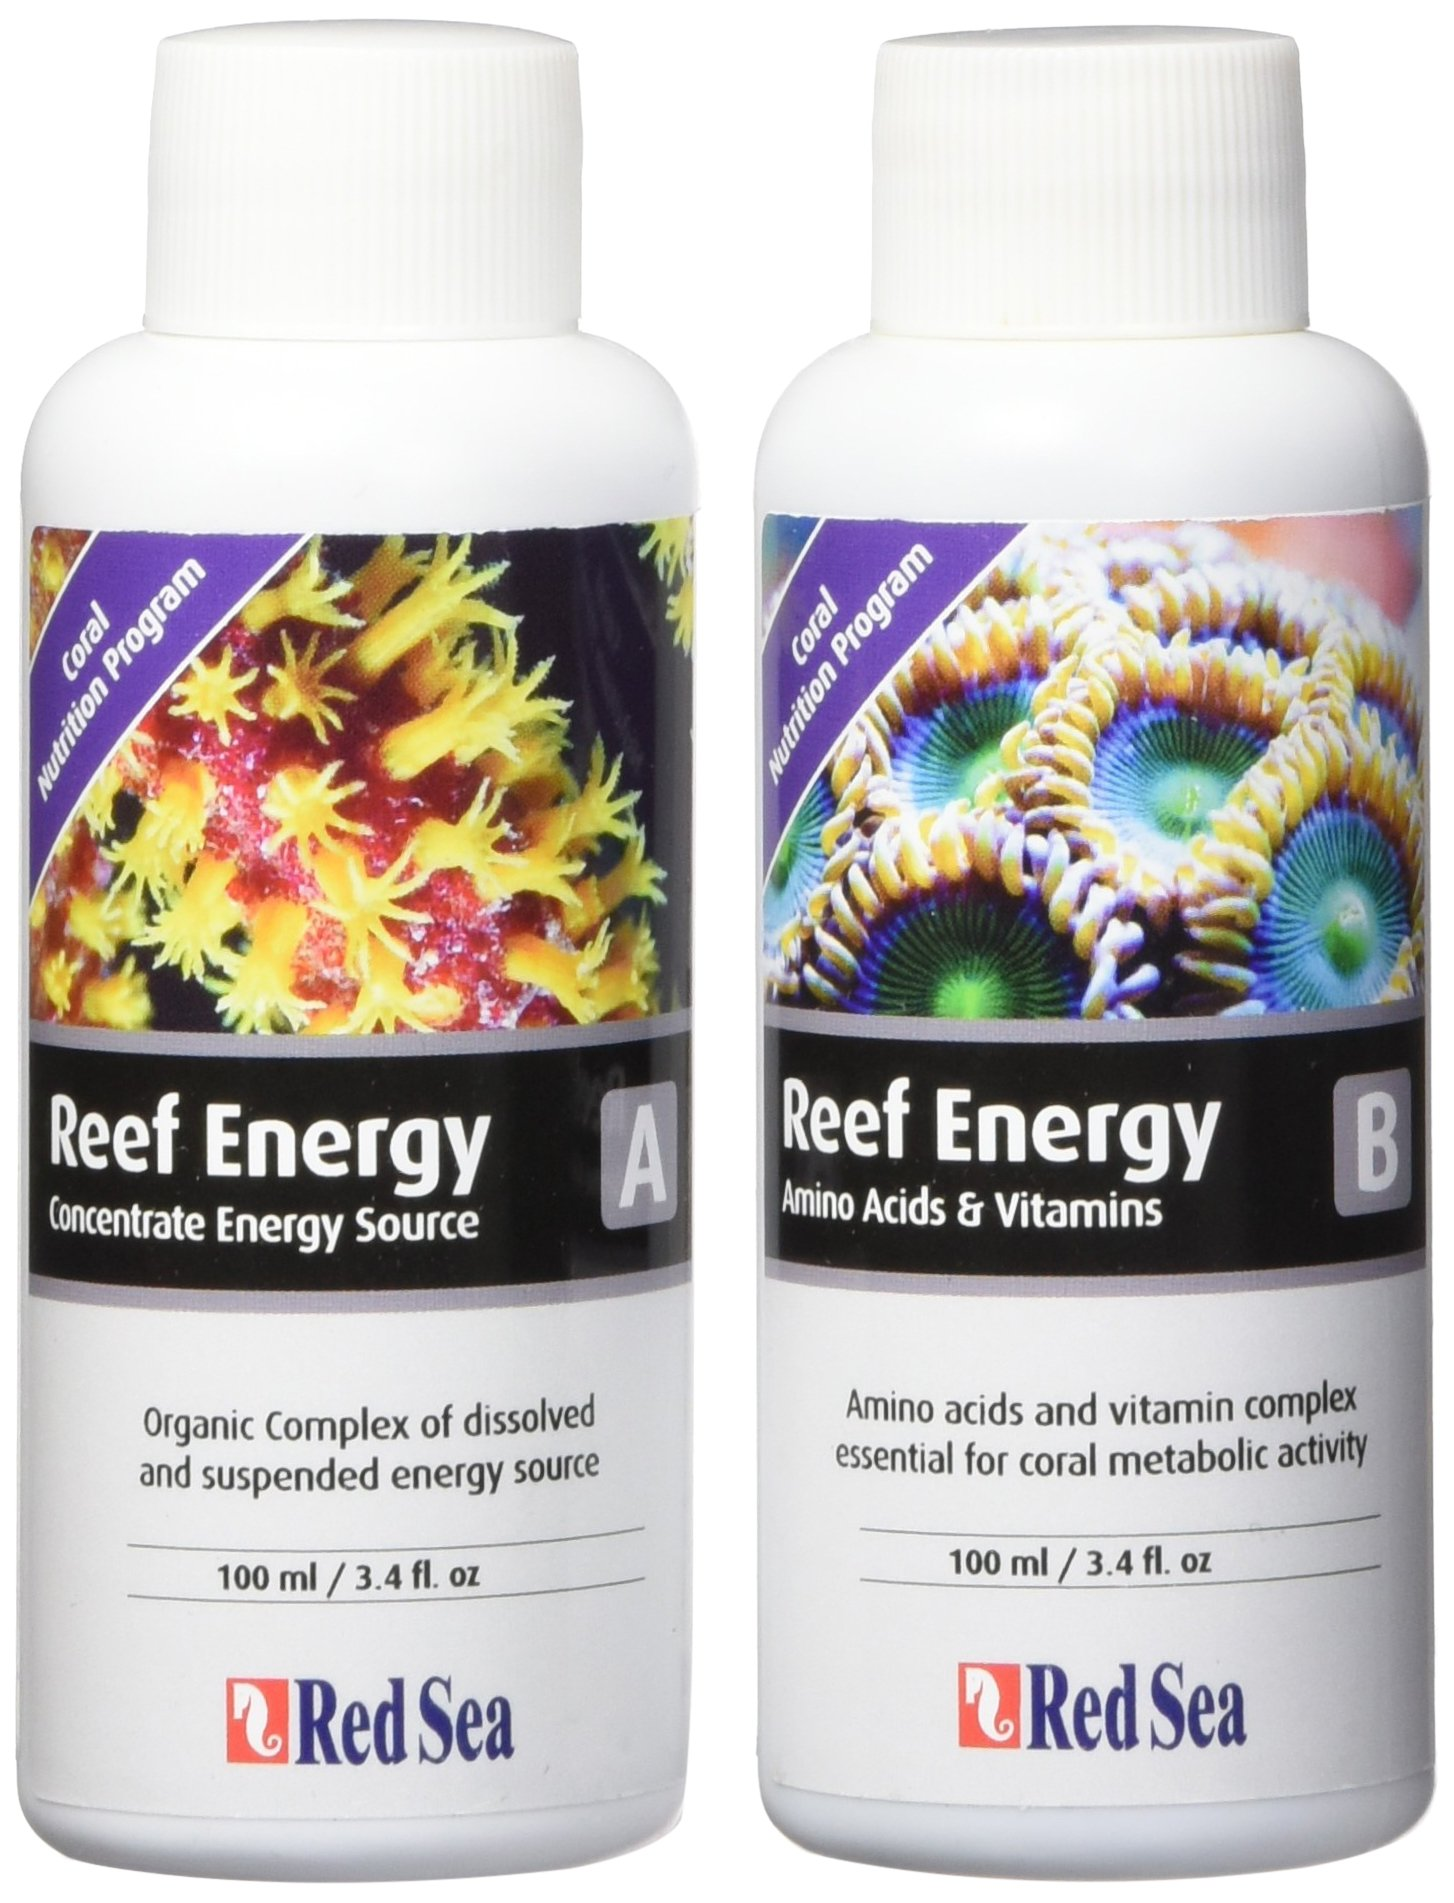 Red Sea Fish Pharm ARE22080 2-Pack Reef Energy A and B Supplements for Aquarium, 100ml - Packaging may vary